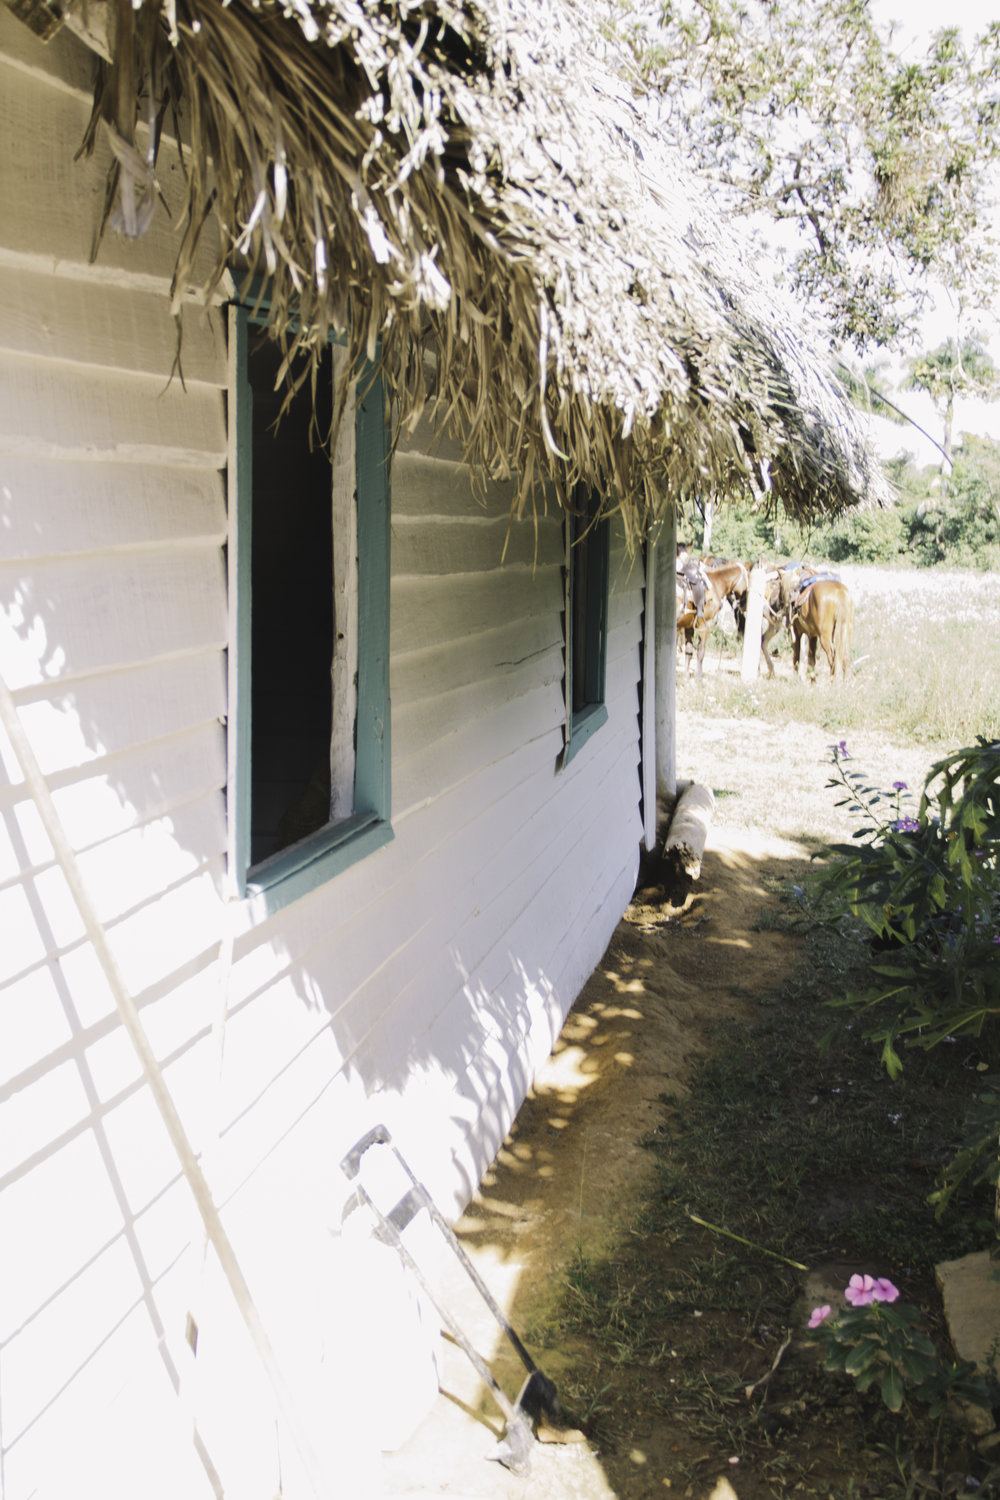 Our Favorite Day in Cuba | Horseback Riding in Vinales, Cuba | Beyond Ordinary Guides-45.jpg